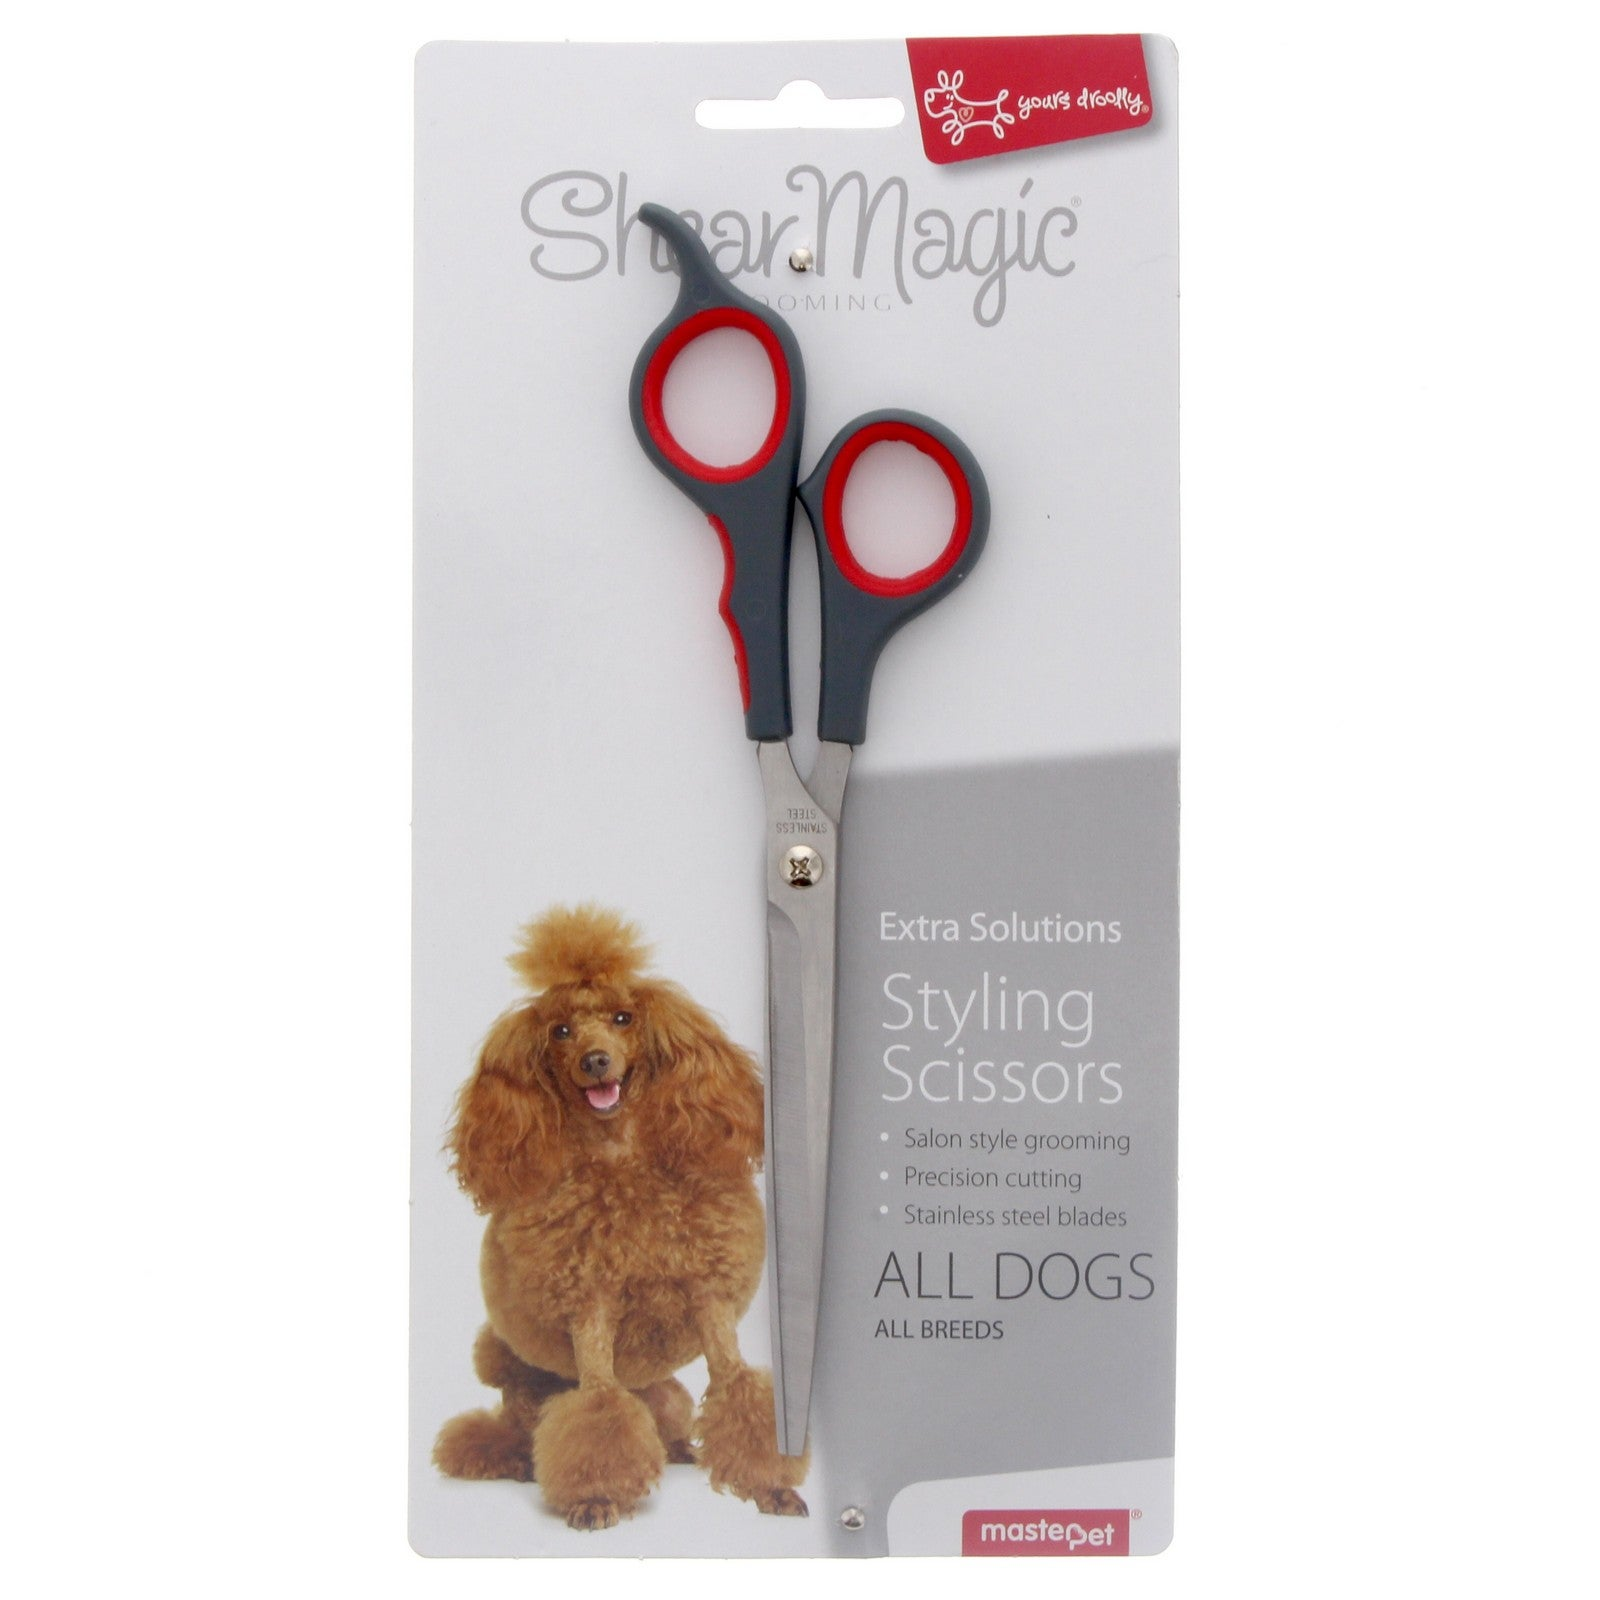 Shear Magic Dog Puppy Styling Scissors High Quality Stainless Steel Trimming